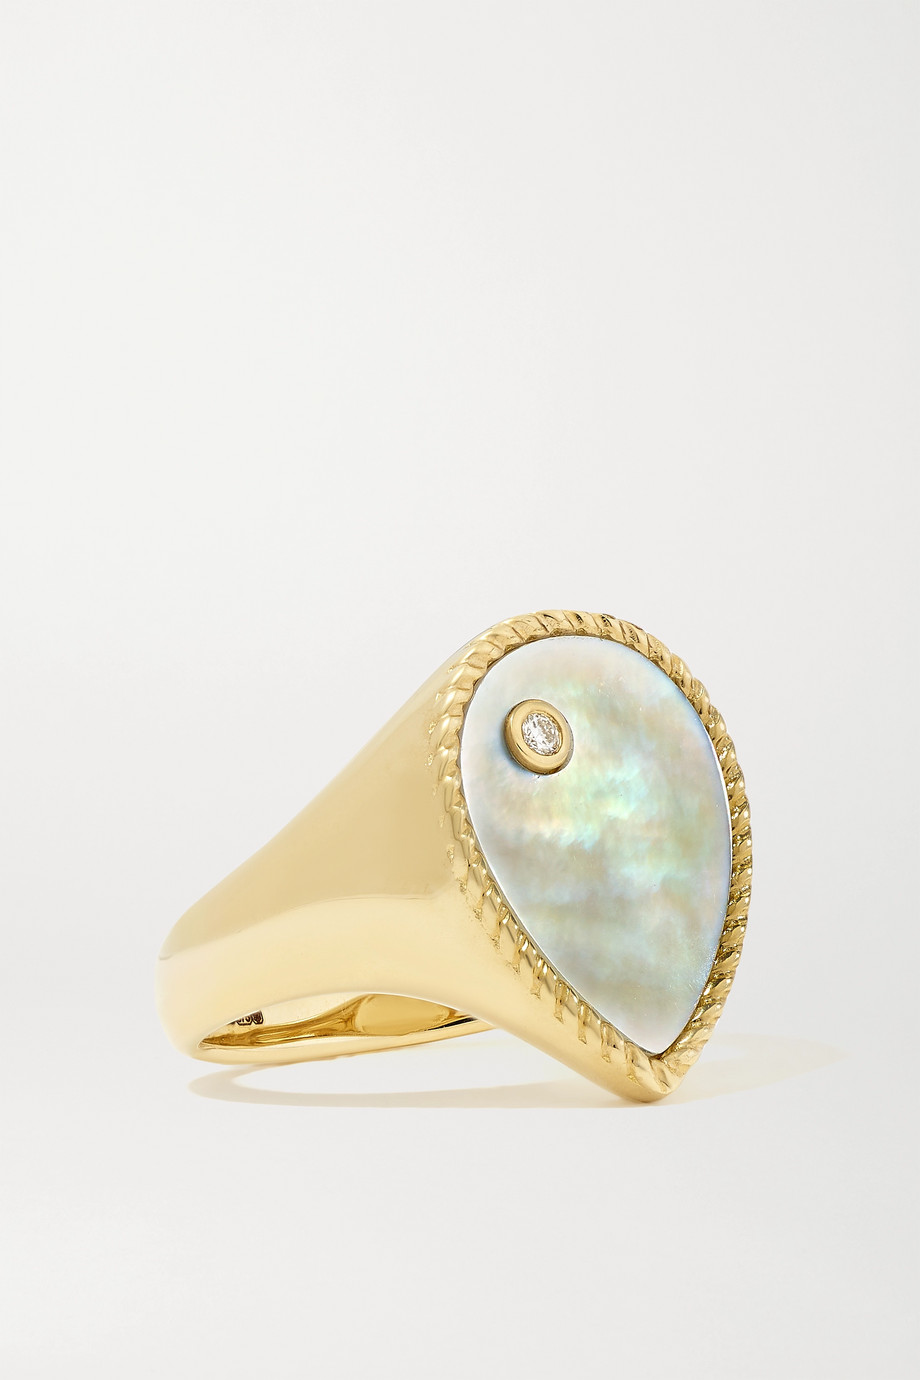 Yvonne Léon 9-karat gold mother-of-pearl and diamond signet ring